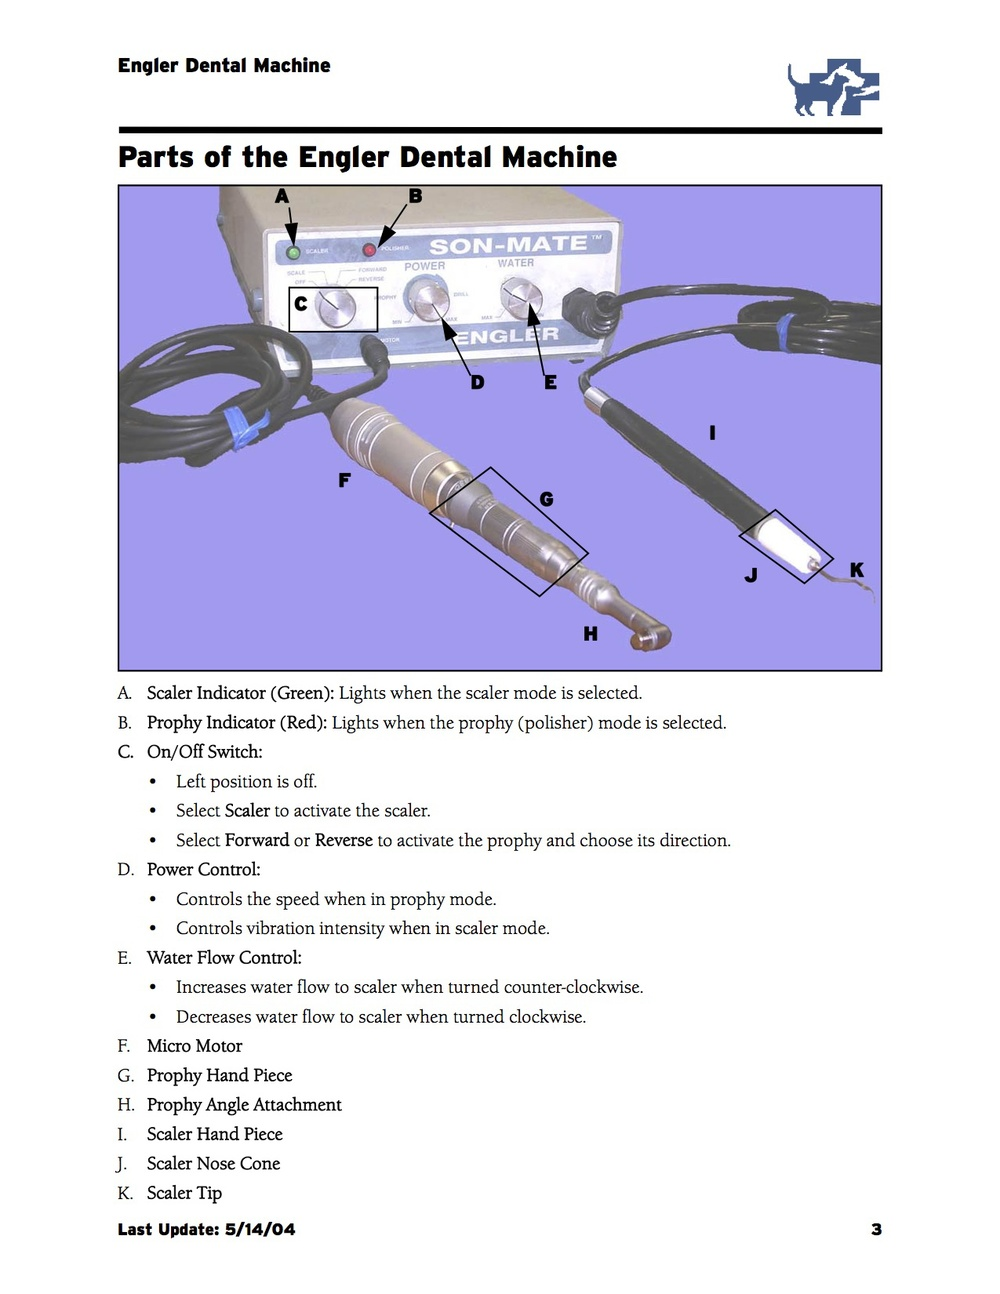 Engler_Dental_Machine2.jpg